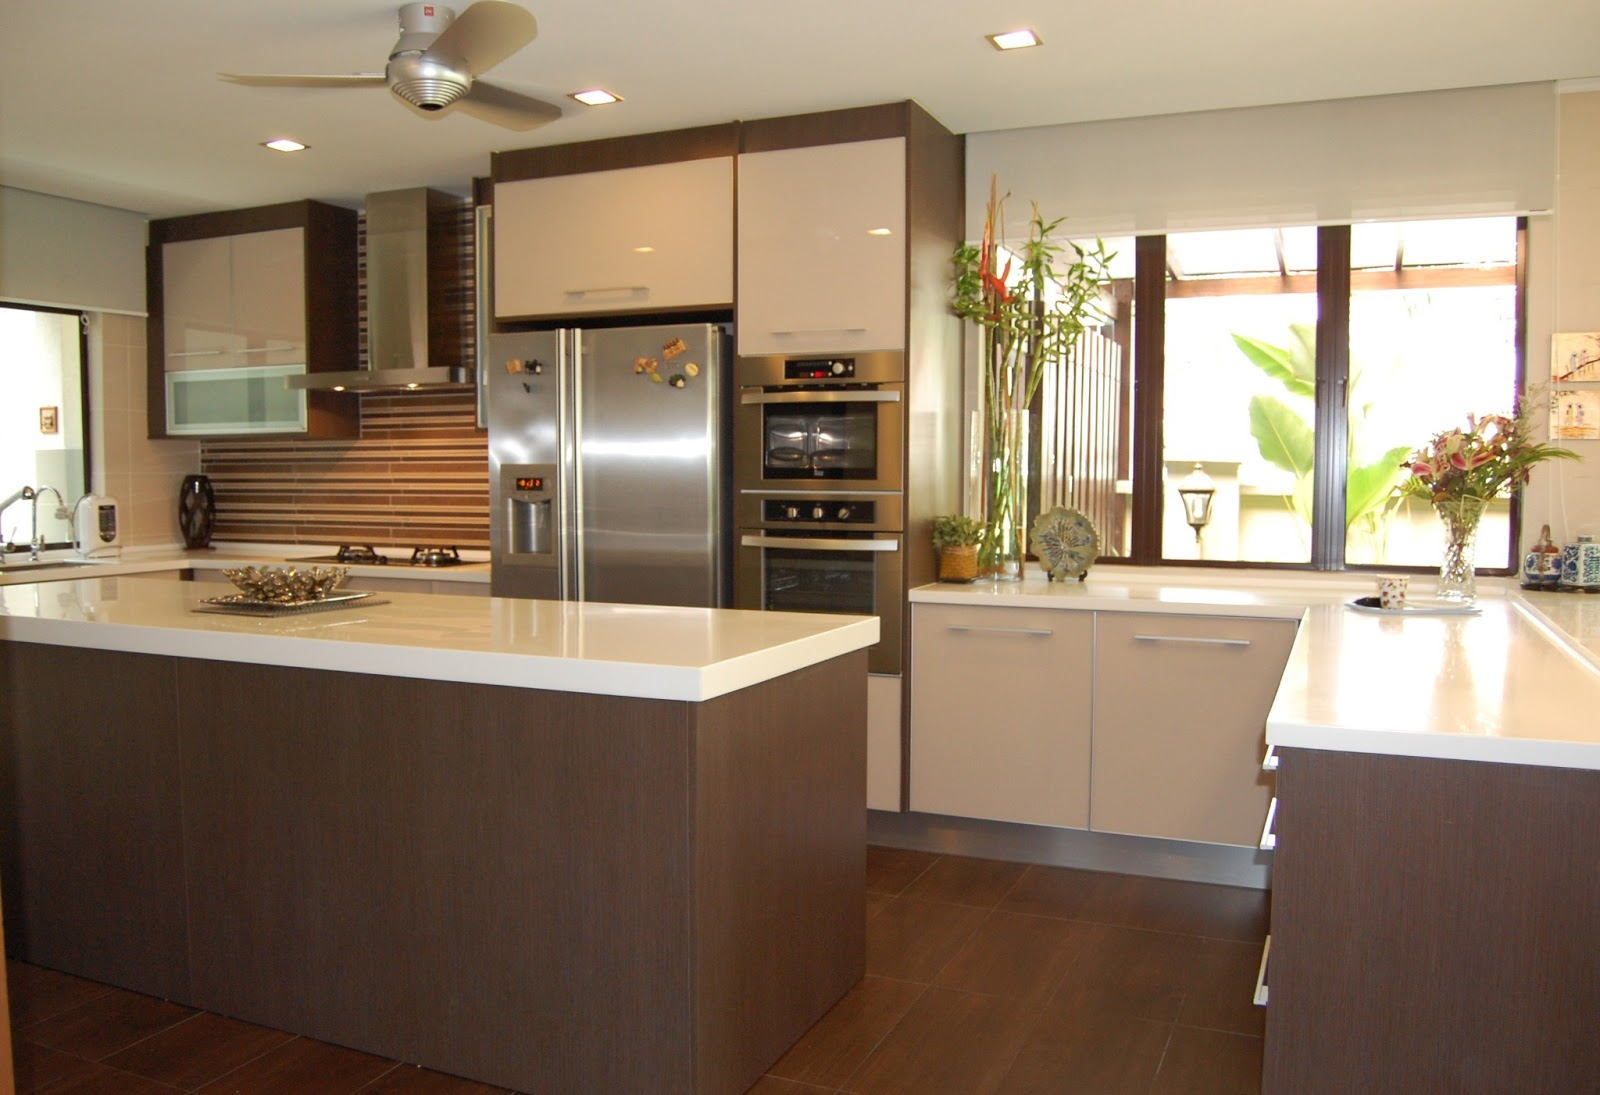 Meridian Design Kitchen Cabinet And Interior Design Blog Malaysia Design For Bandar Sunway